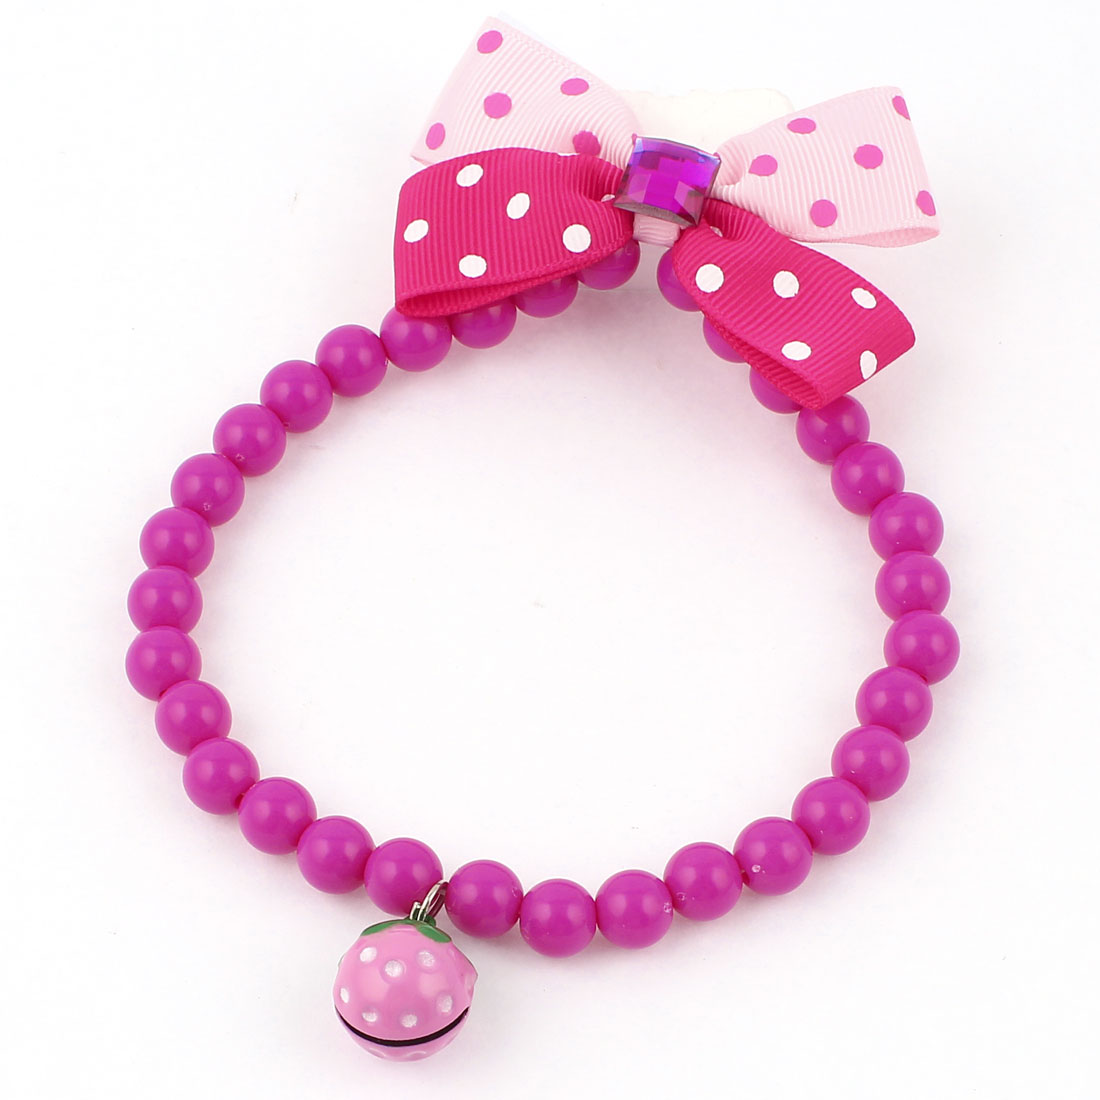 Faux Crystal Bowtie Accent Pet Dog Plastic Beads Collar Necklace Fuchsia Red Pink S